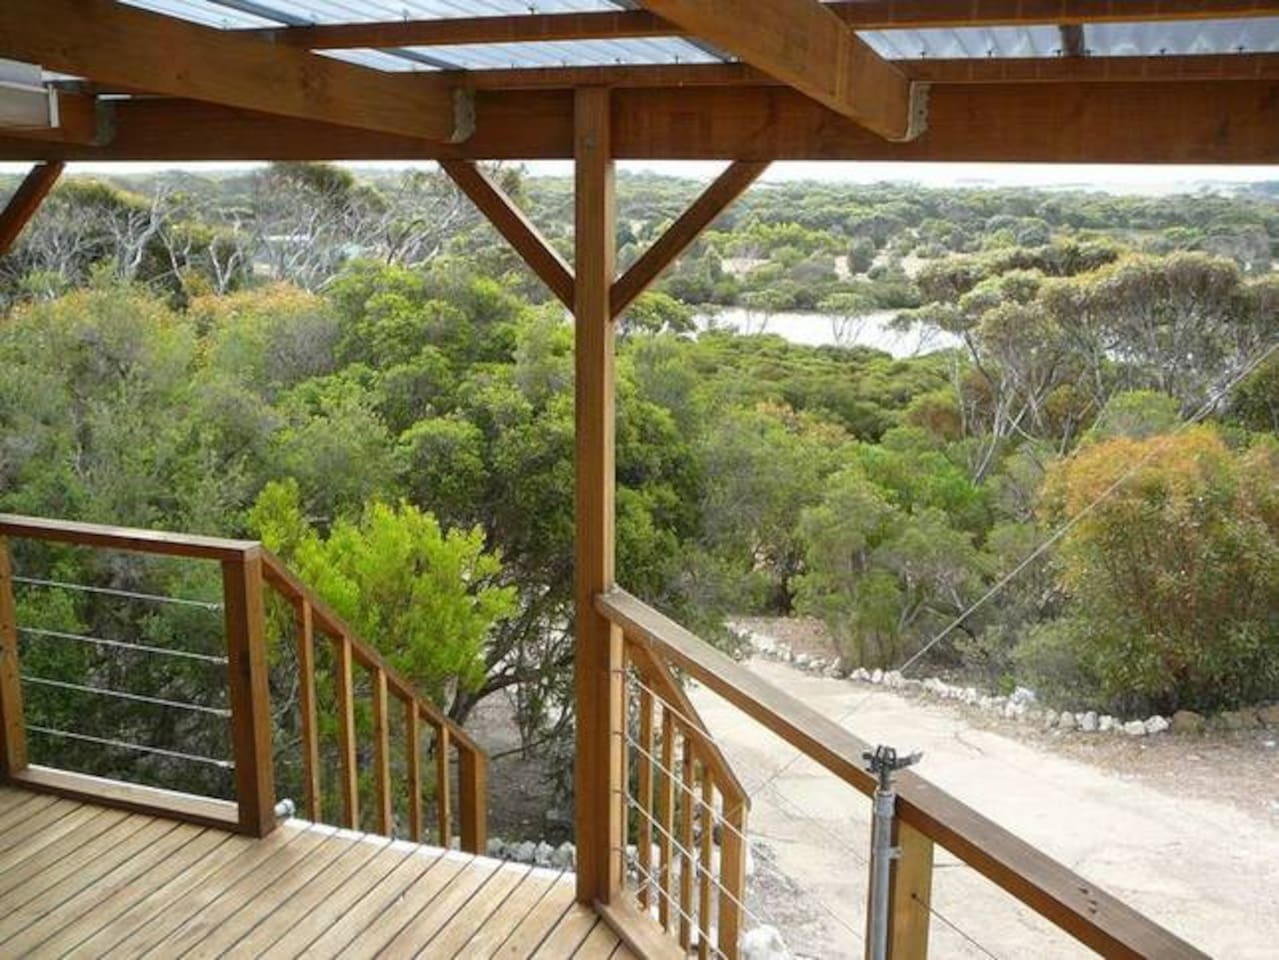 The view out over the vegetation and river from Osprey Heights porch.